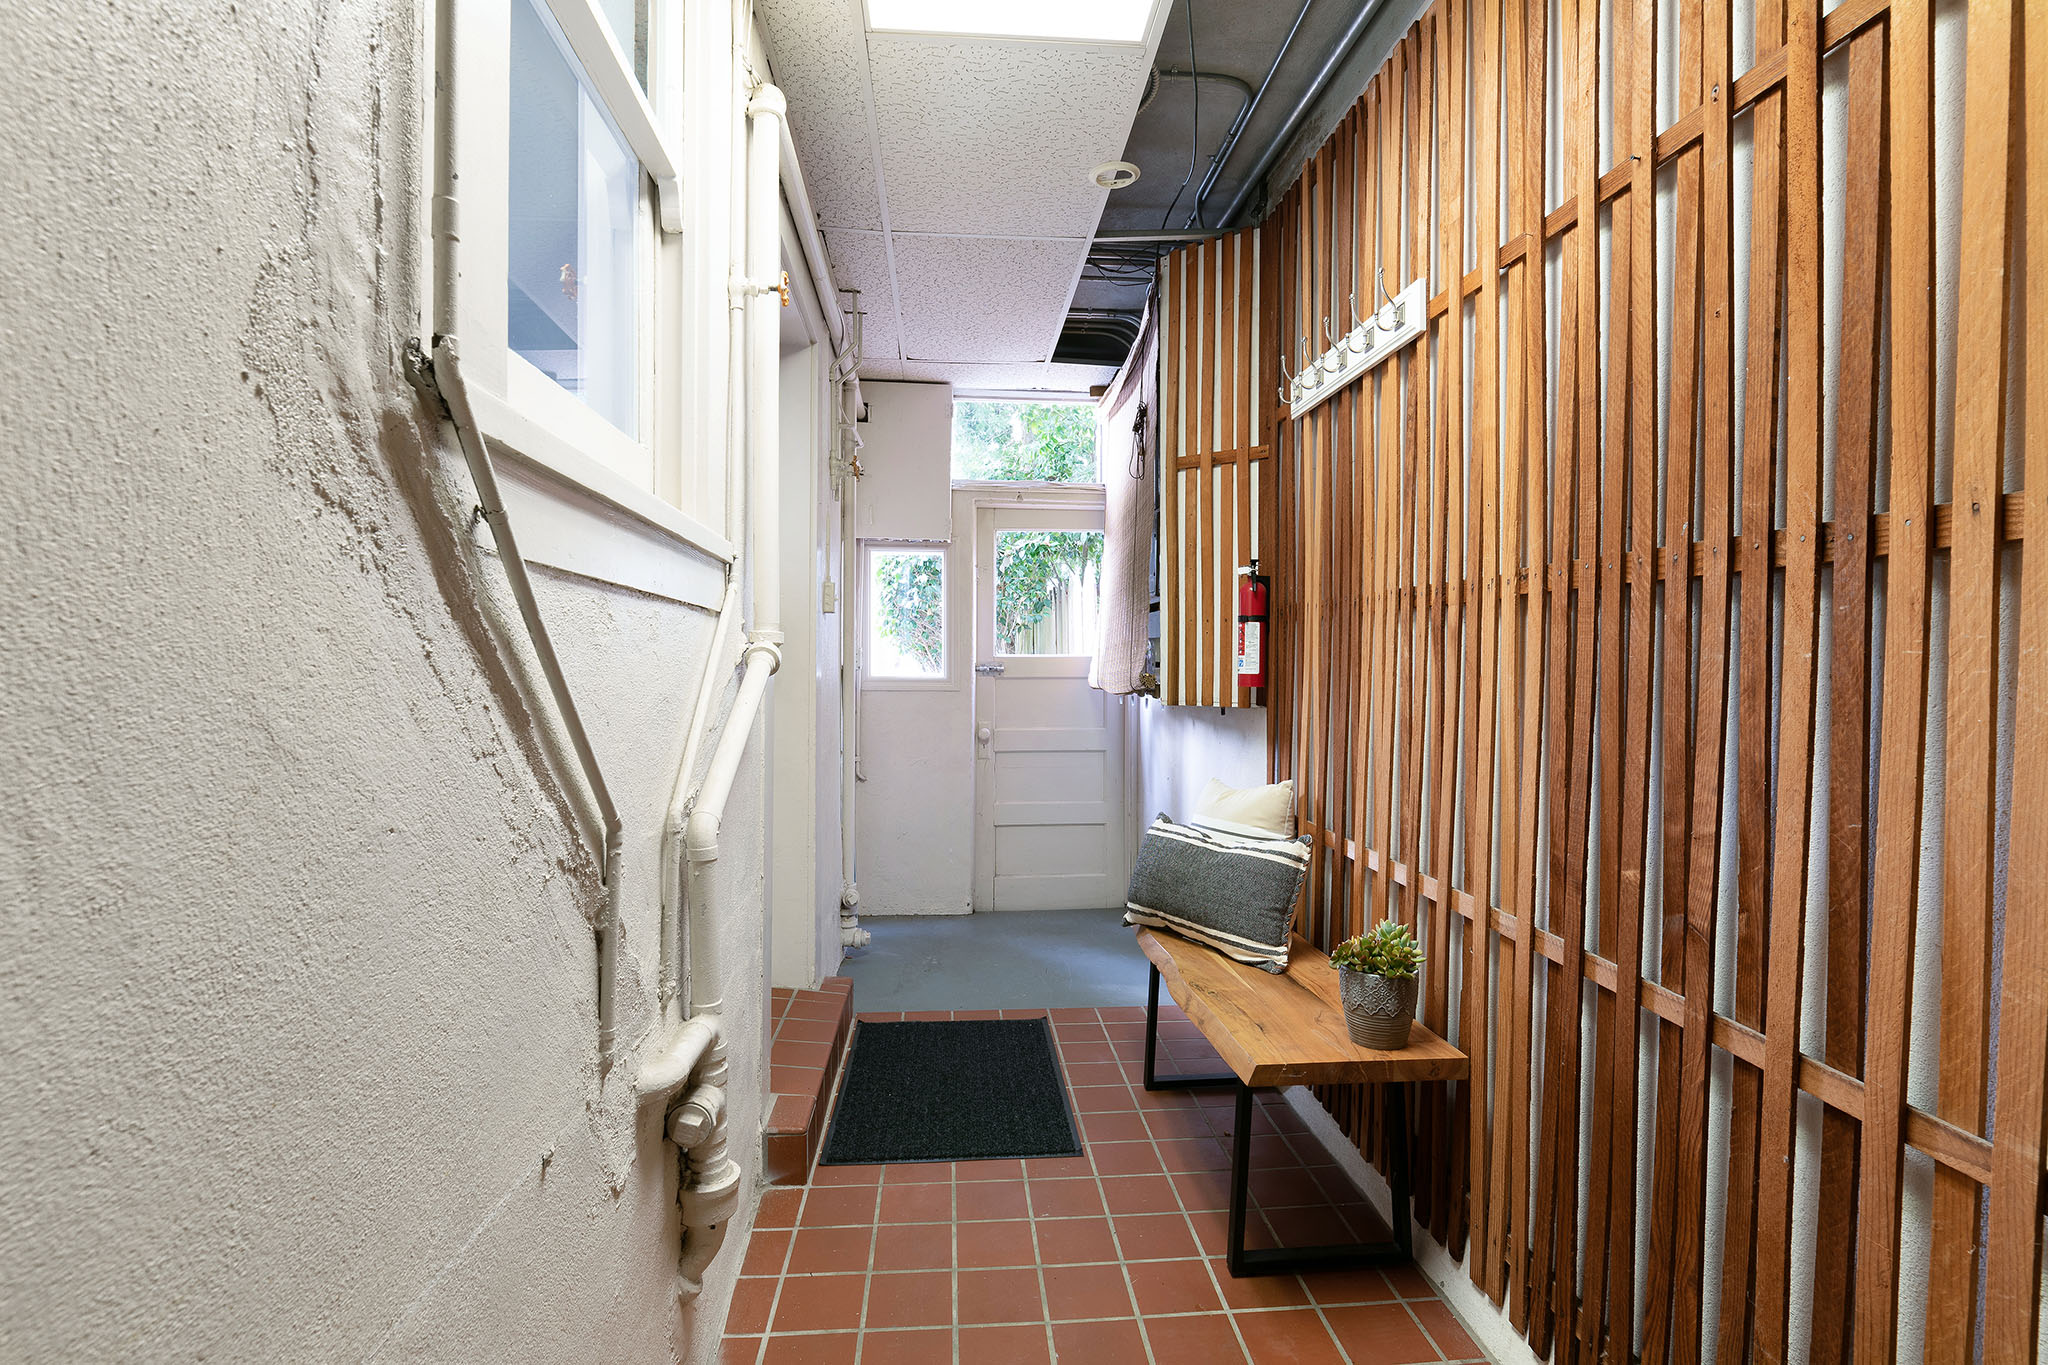 SF Home - Entry way